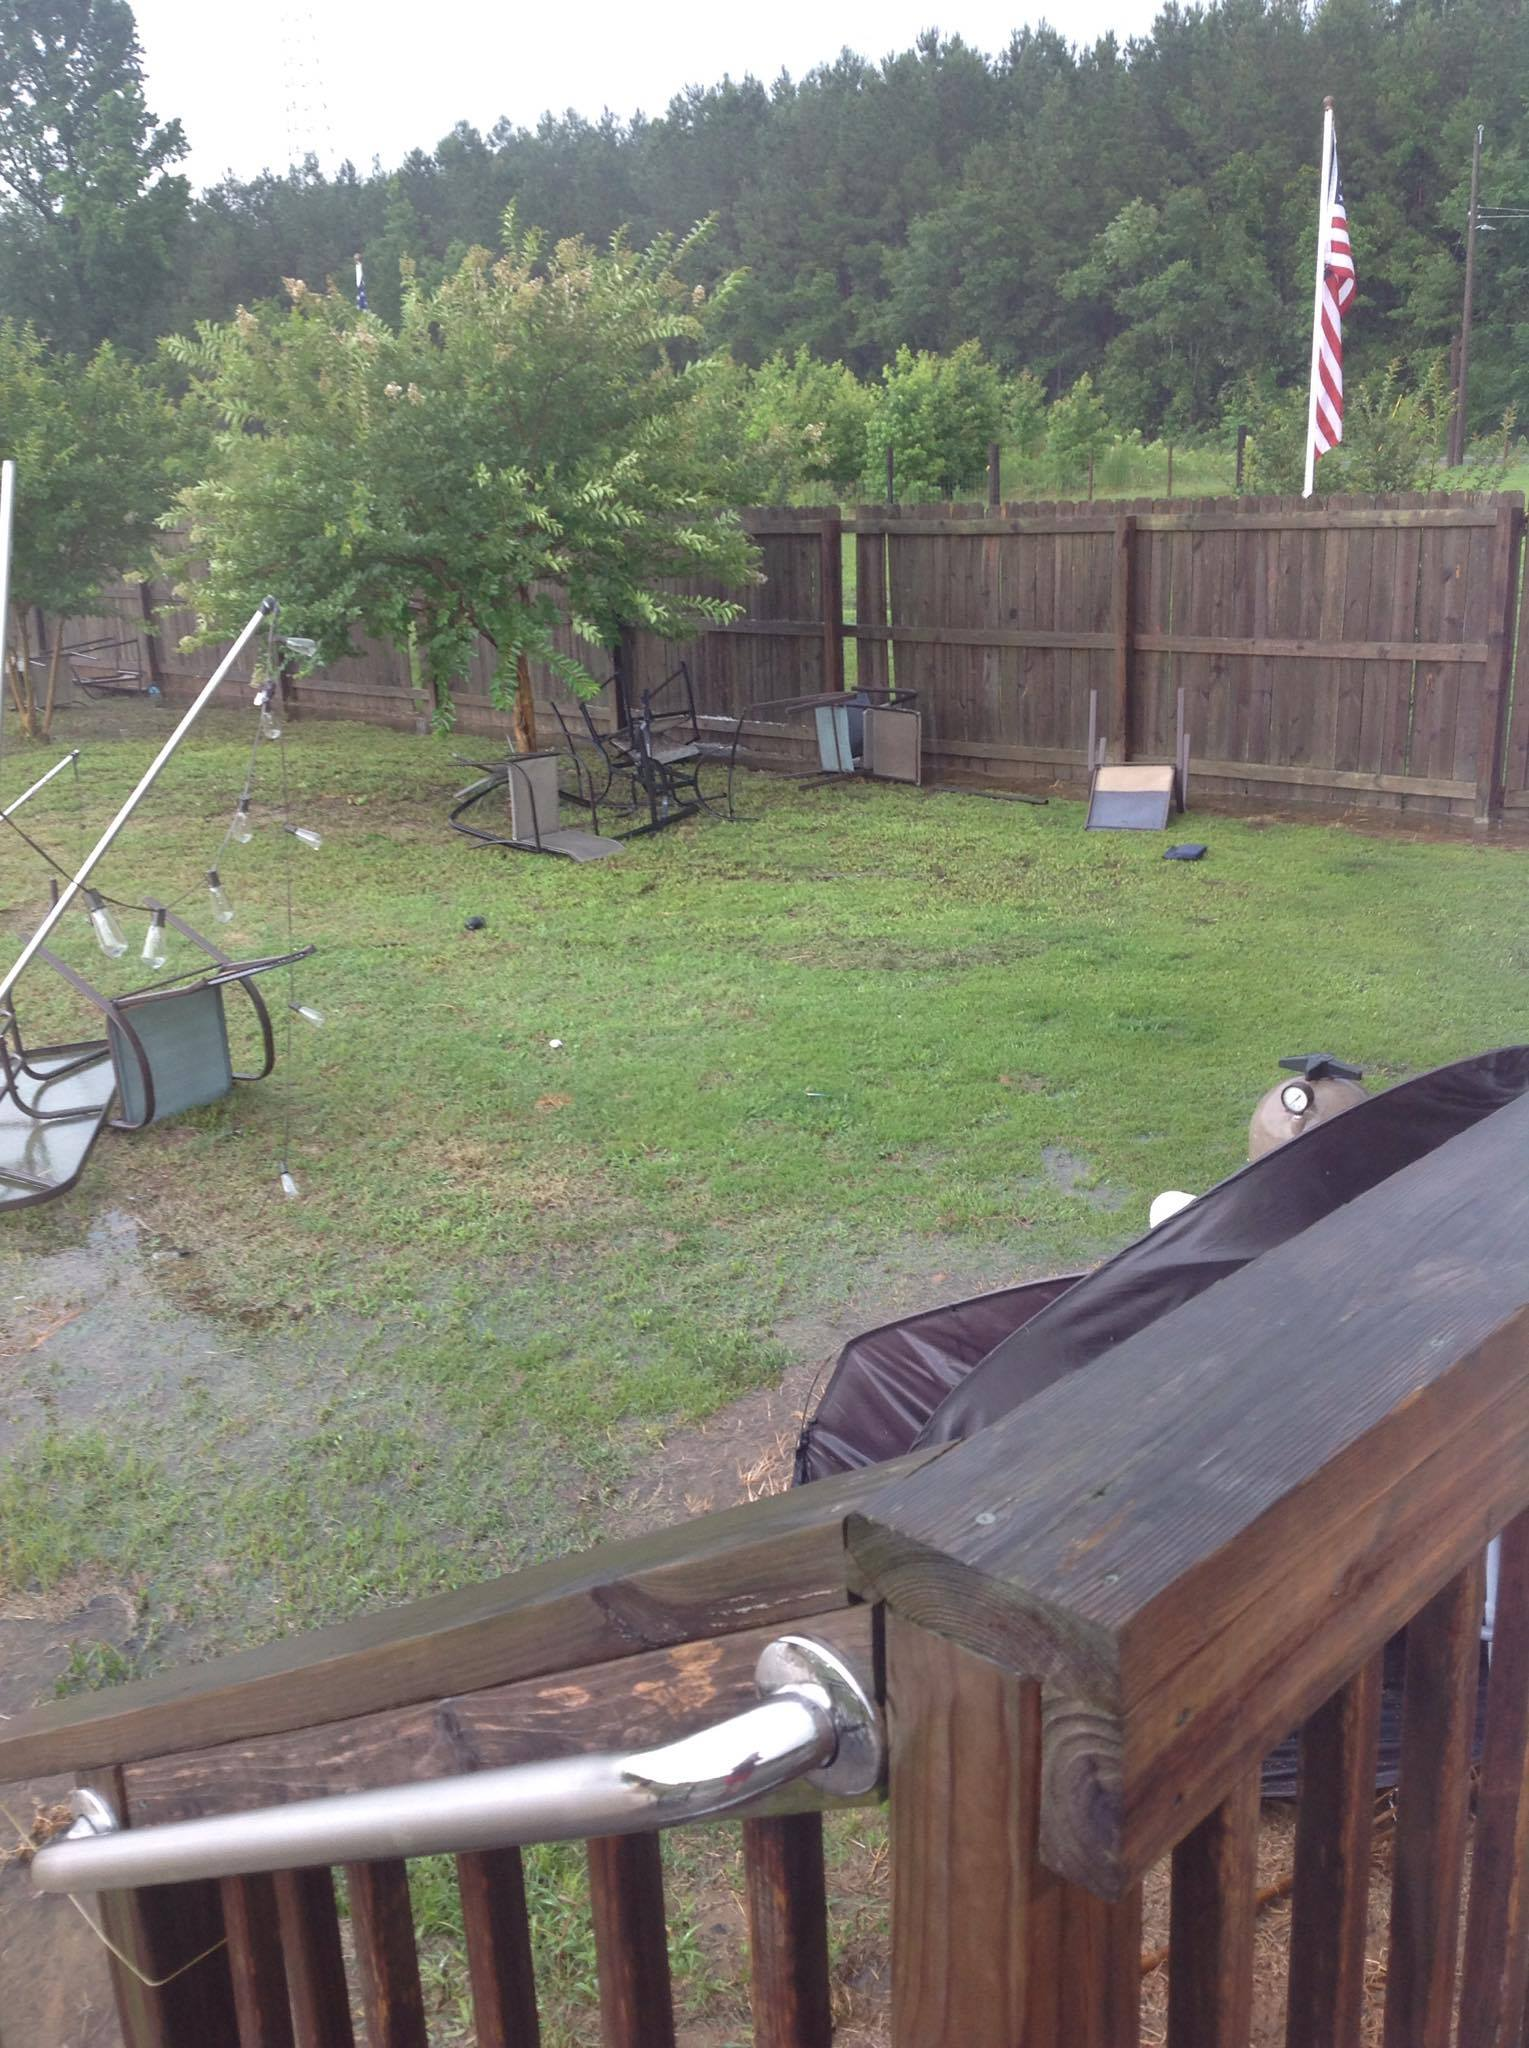 Strong winds from a storm caused damage to a home in Latta. (Photo from April Nuneville)